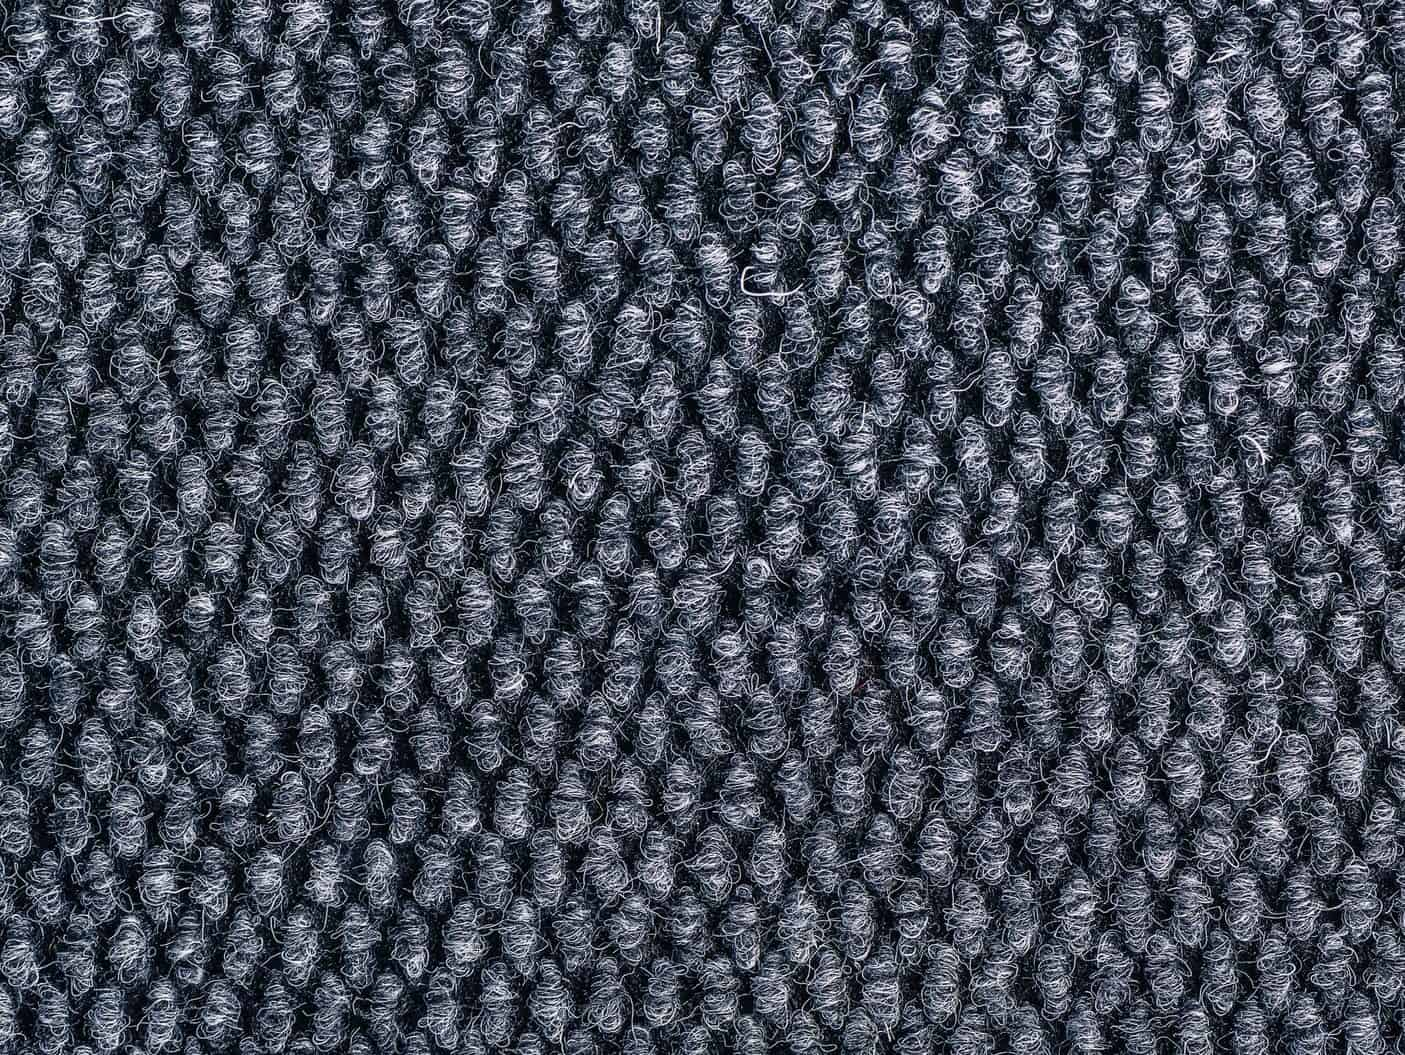 Gray rough carpet texture surface